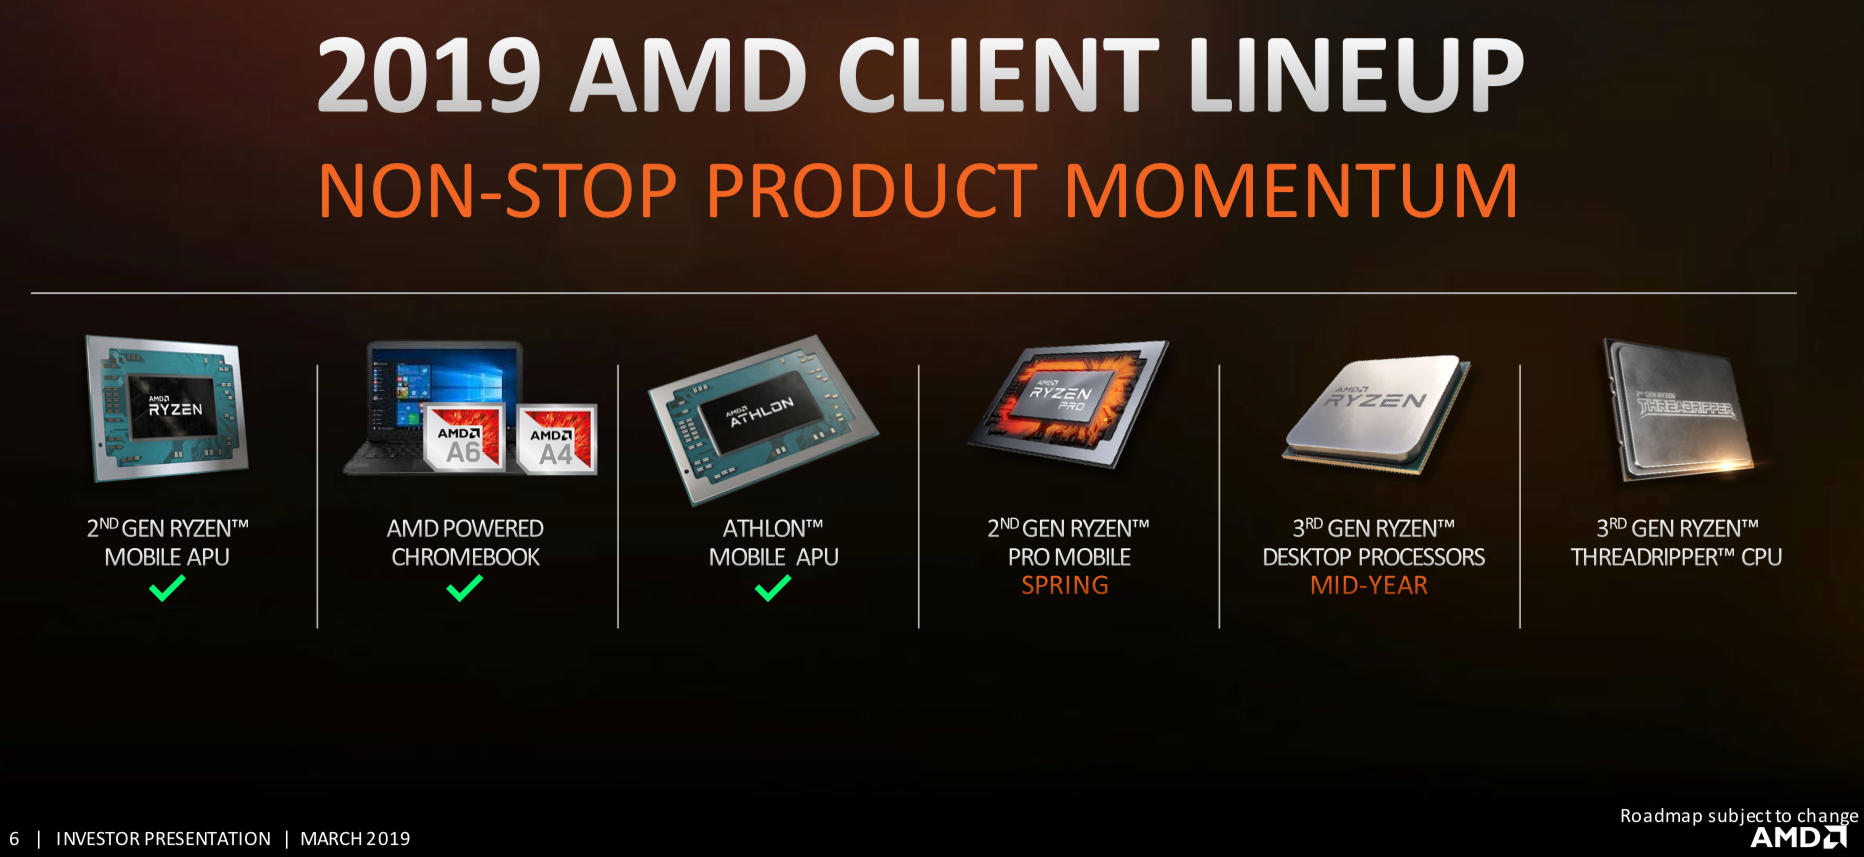 AMD 3rd Gen Ryzen & Ryzen Threadripper CPUs Launching in 2H of 2019